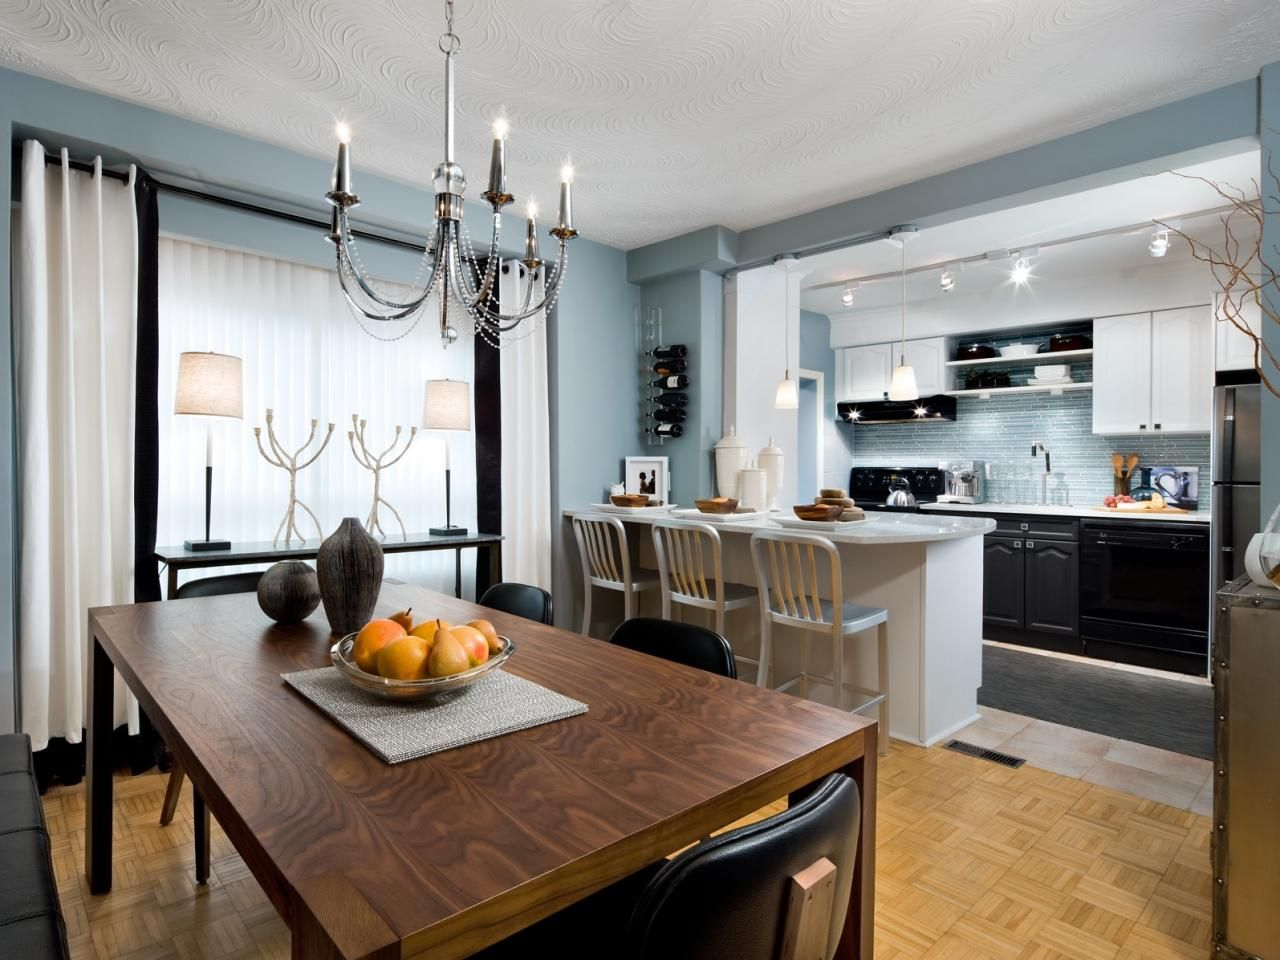 Inviting kitchen designs by candice olson kitchen ideas and